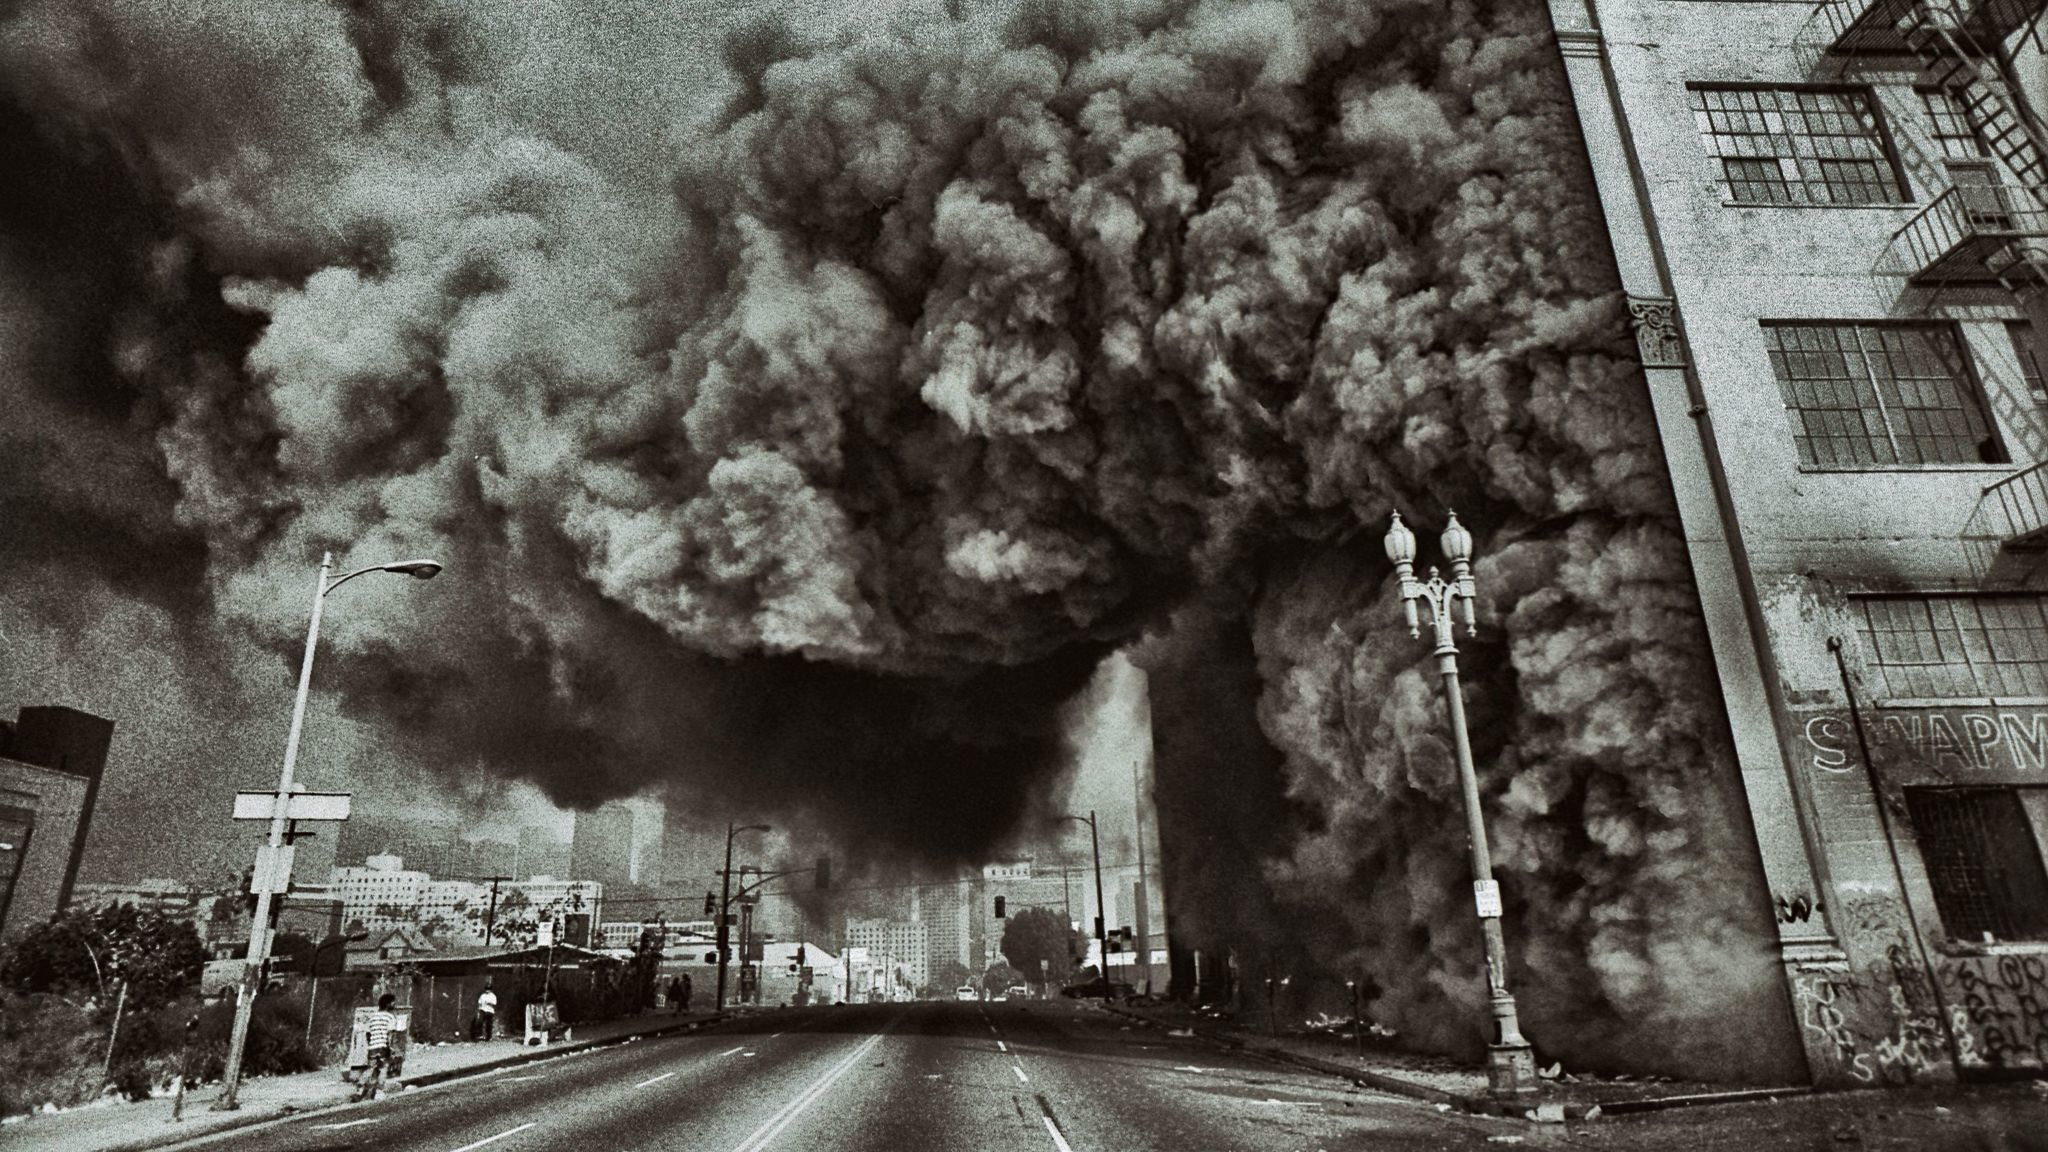 A building at 7th Street and Union Avenue in Los Angeles goes up in flames during the 1992 riots. (Ted Soquii)